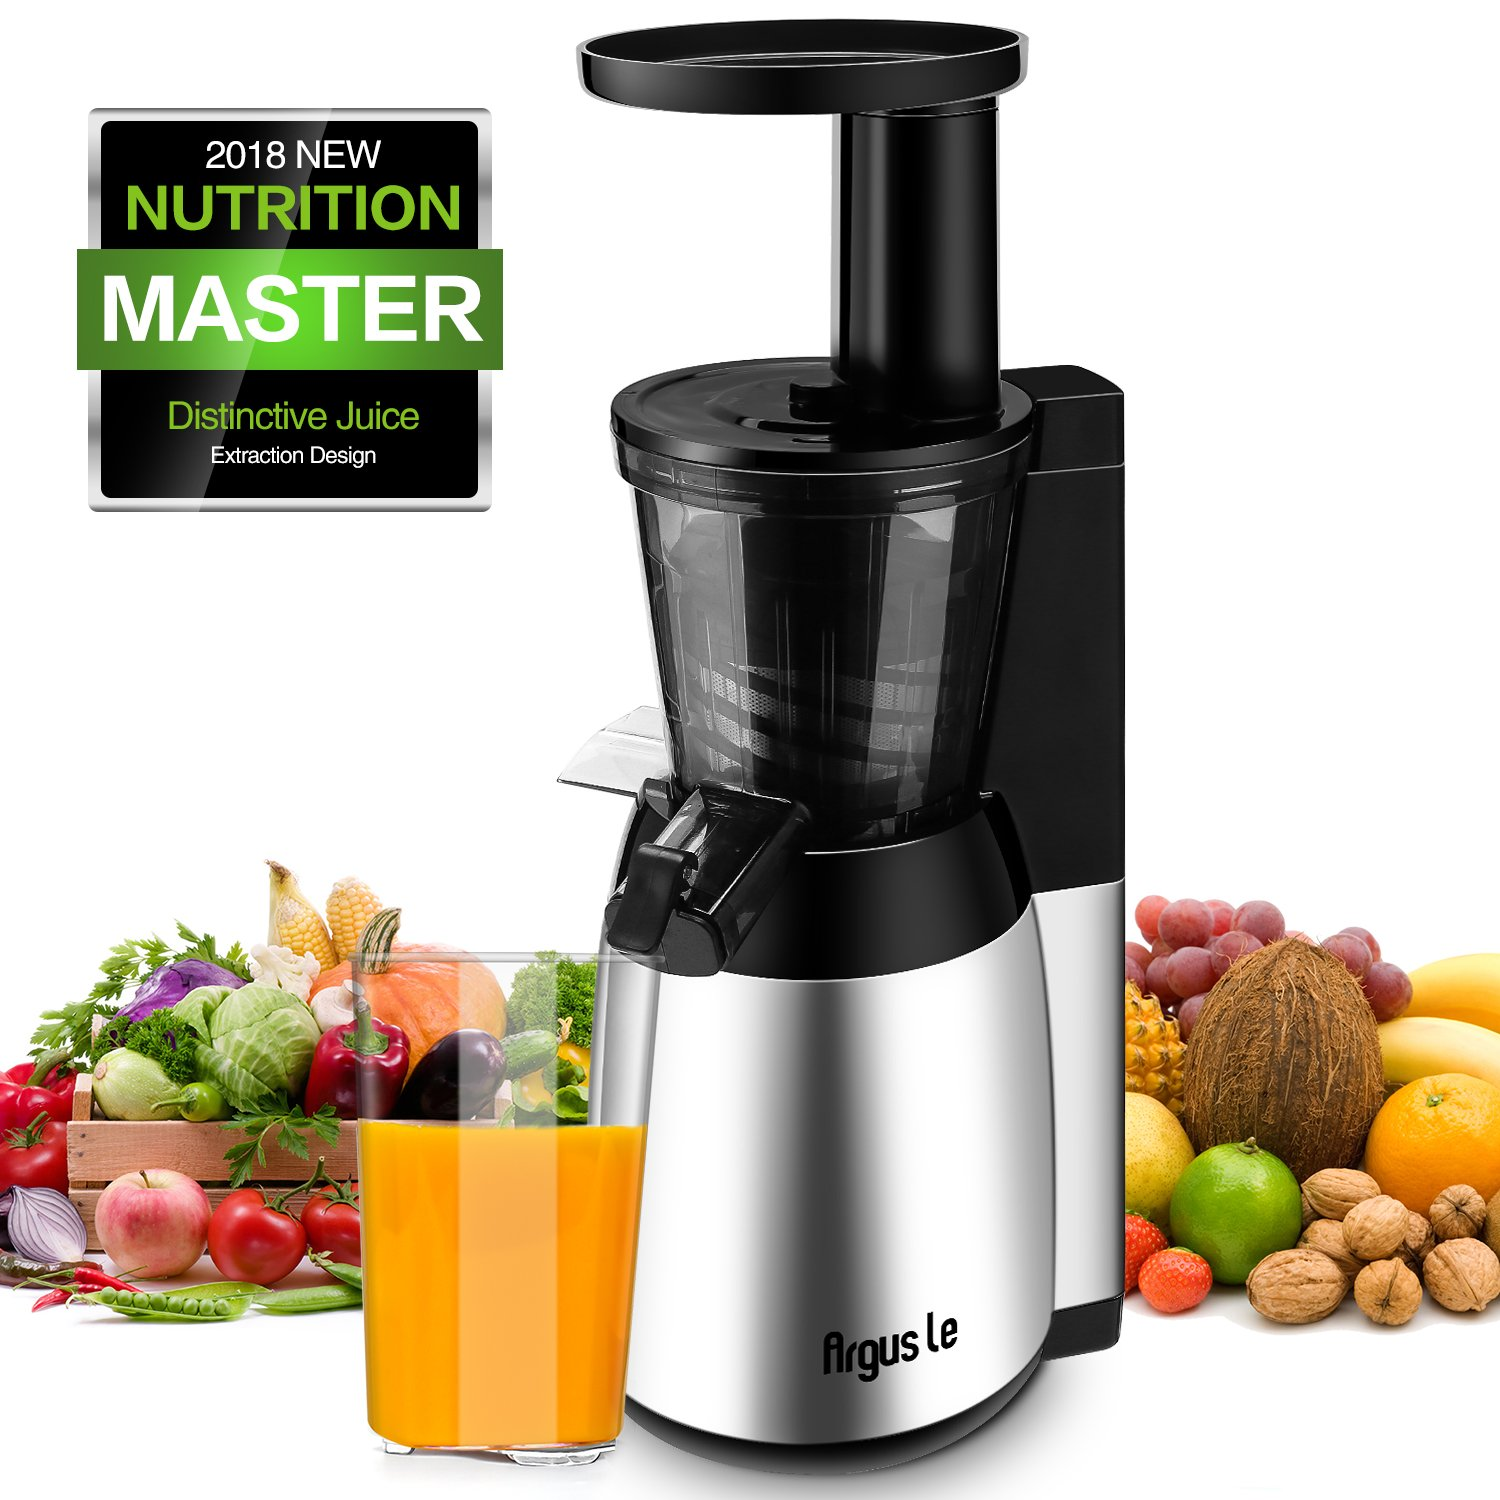 Argus Le Juicer, Slow Masticating Juicer, Quiet and Energy Saving 150W DC Moter, Fruit and Vegetable Juice Extractor with Frozen Fruits Sorbet Filter and Recipe - Silver MEB4000S